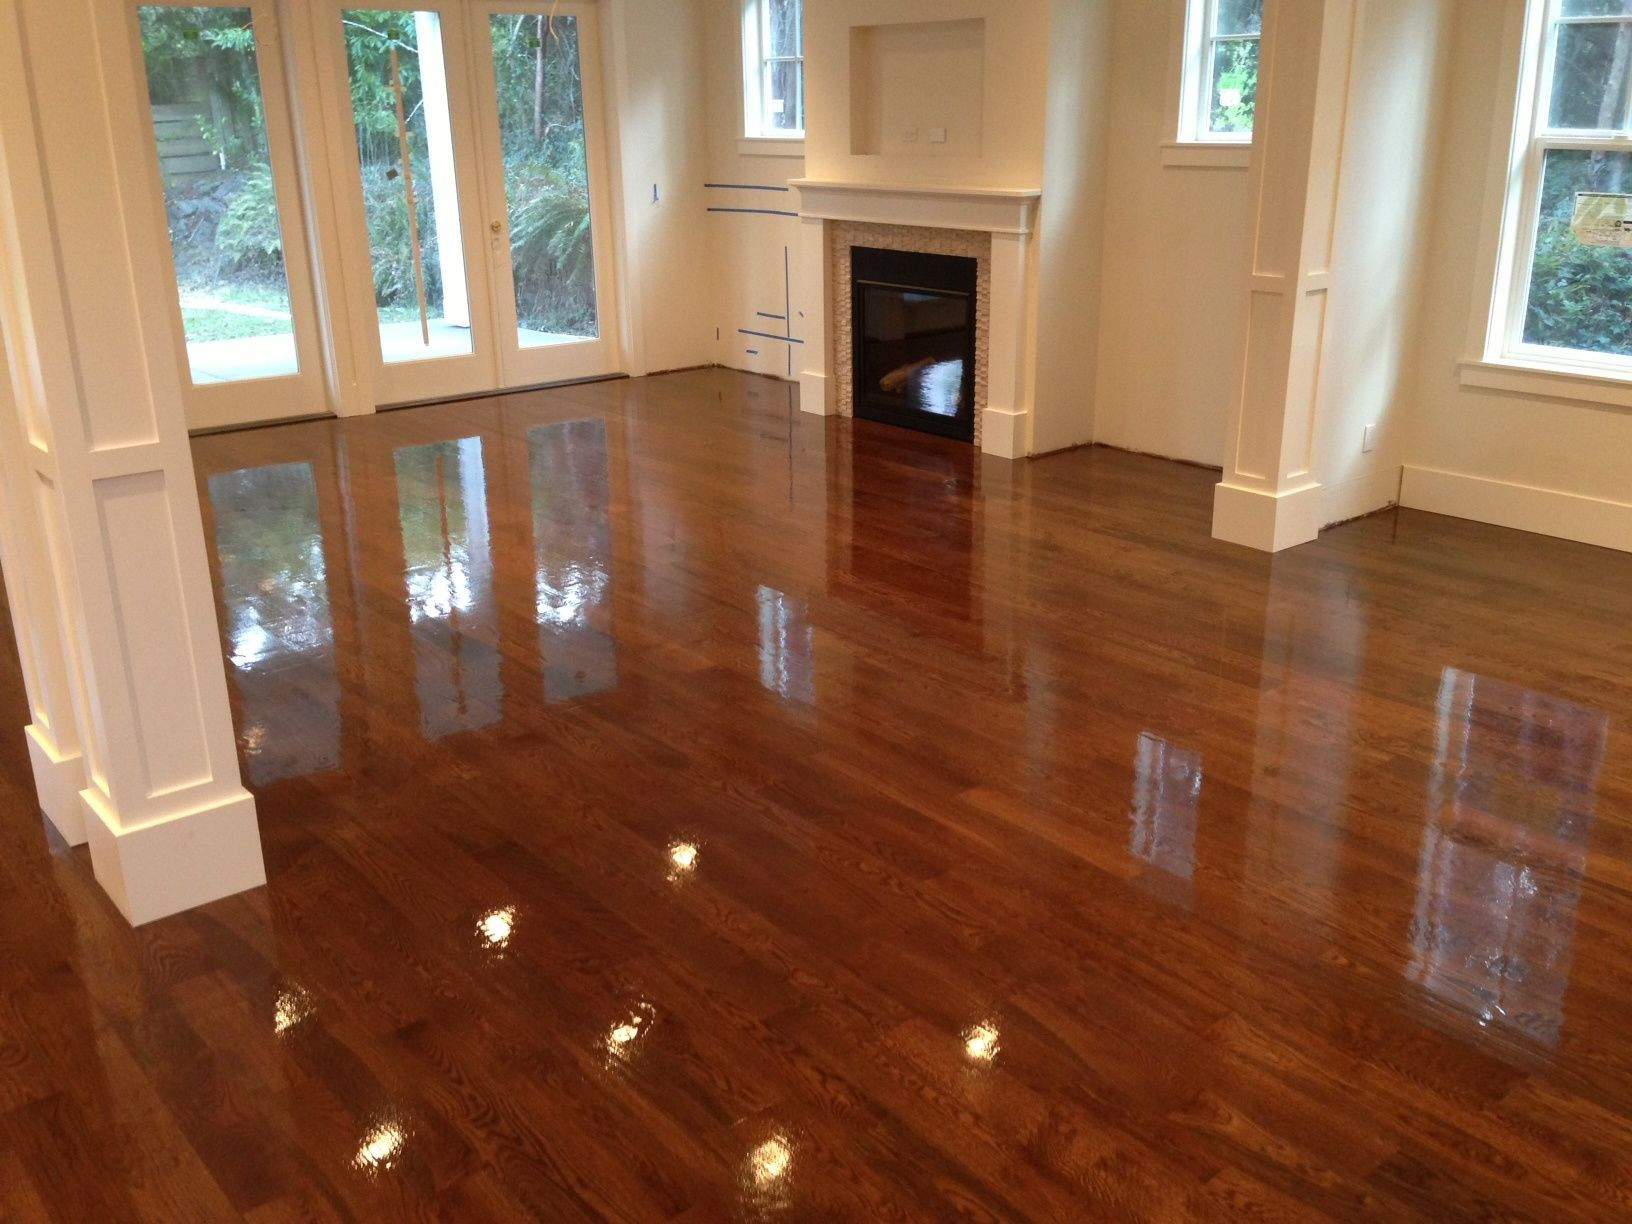 hardwood floor refinishing and installation of express flooring has outlets in glendale tucson and all neighboring for hardwood floors seattle hardwood floor refinishing and installation seattle tacoma moore floors inc